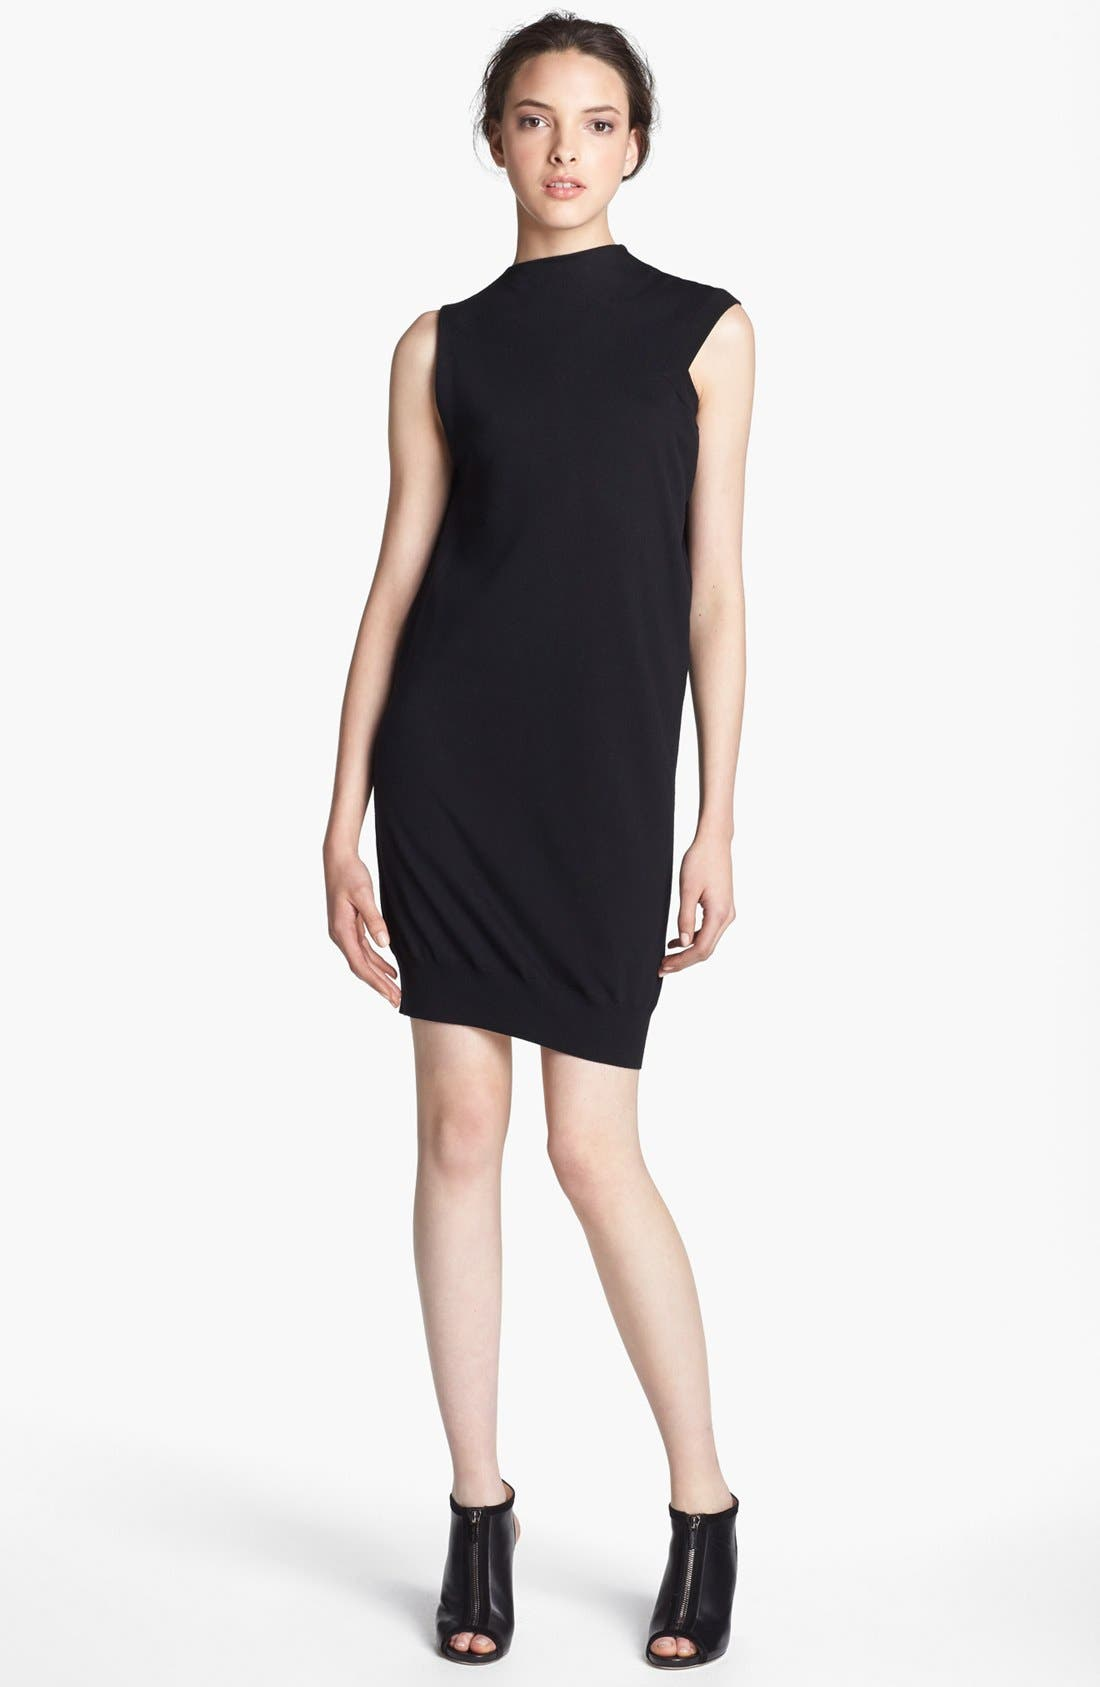 Alternate Image 1 Selected - Alexander Wang Sleeveless Wool Knit Dress